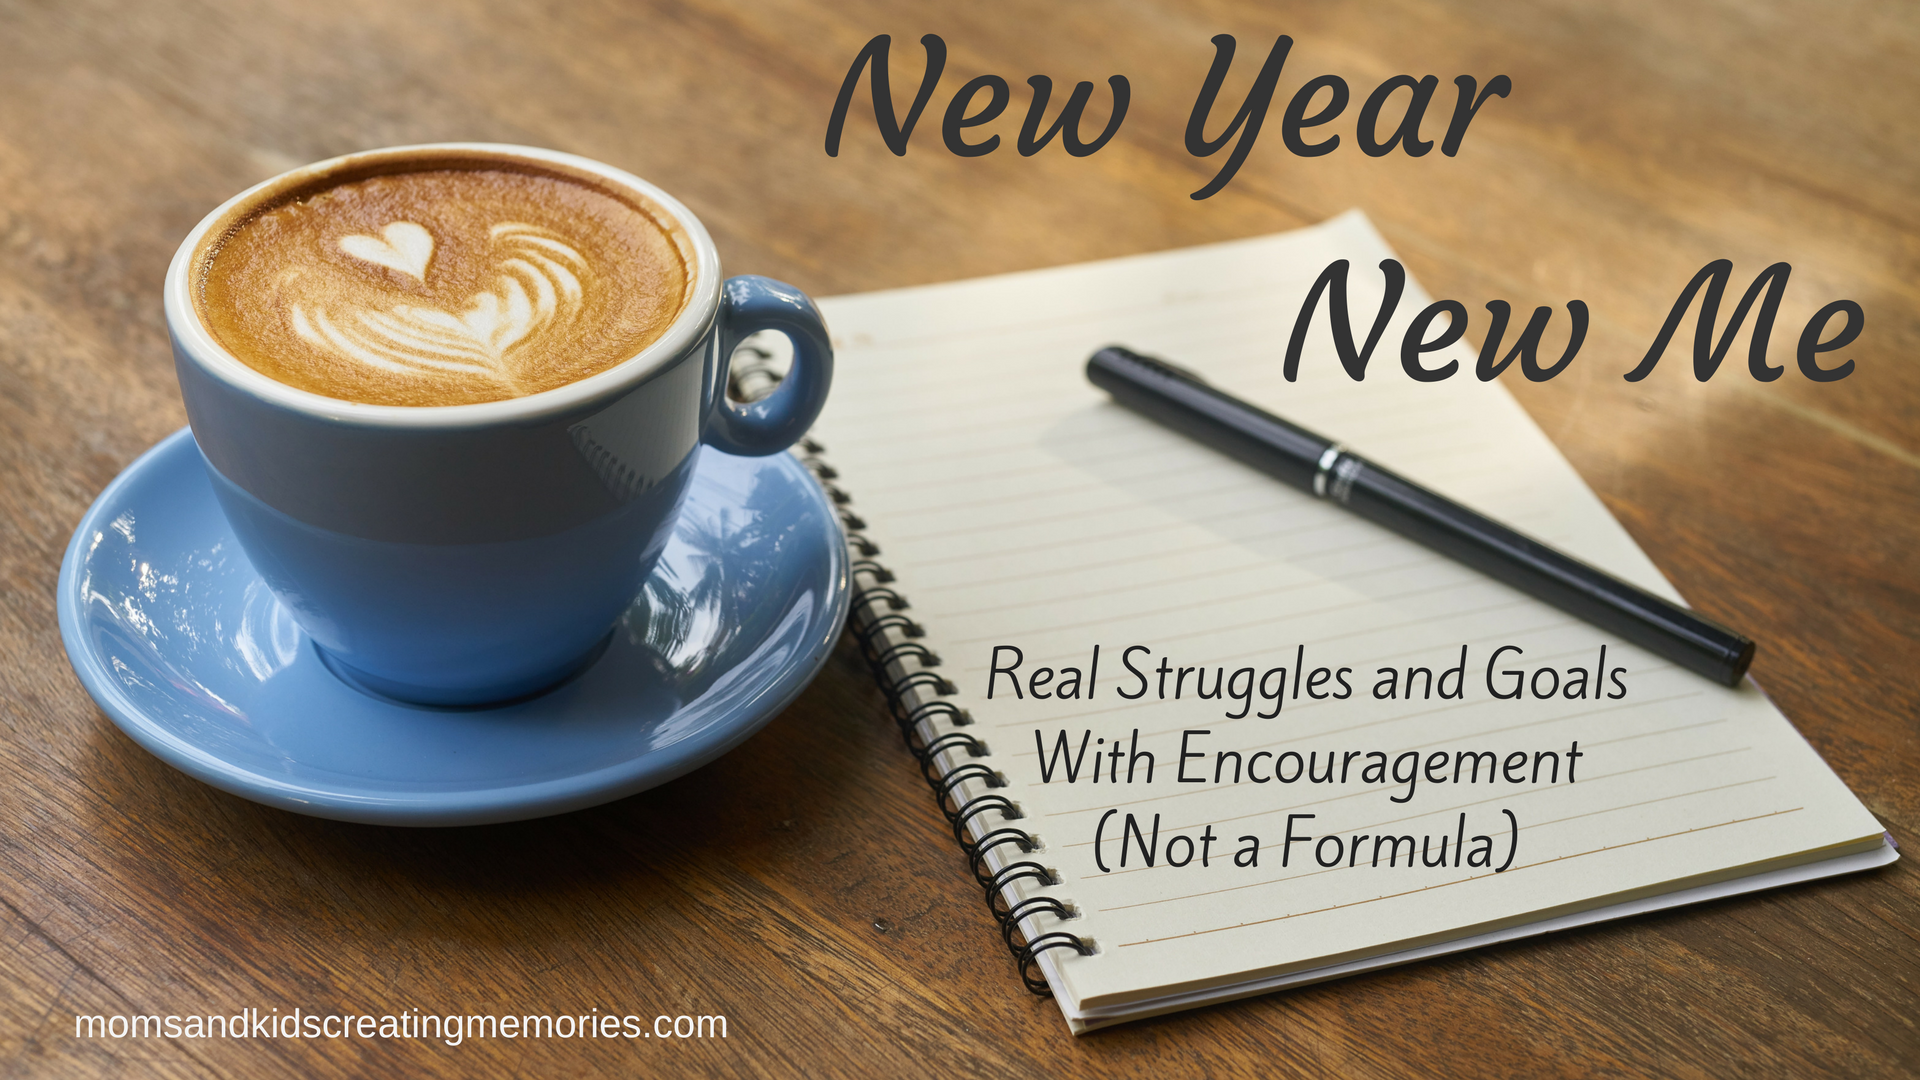 New Year New Me - Did you struggle with things last year that you would like to see changed this year? I know I do and I want to share my struggles with you and hopefully encourage you not with a formula but to know there are others that struggle to and to show you what my goals are for this year. My focus is family! New Mom, New Wife, New Me